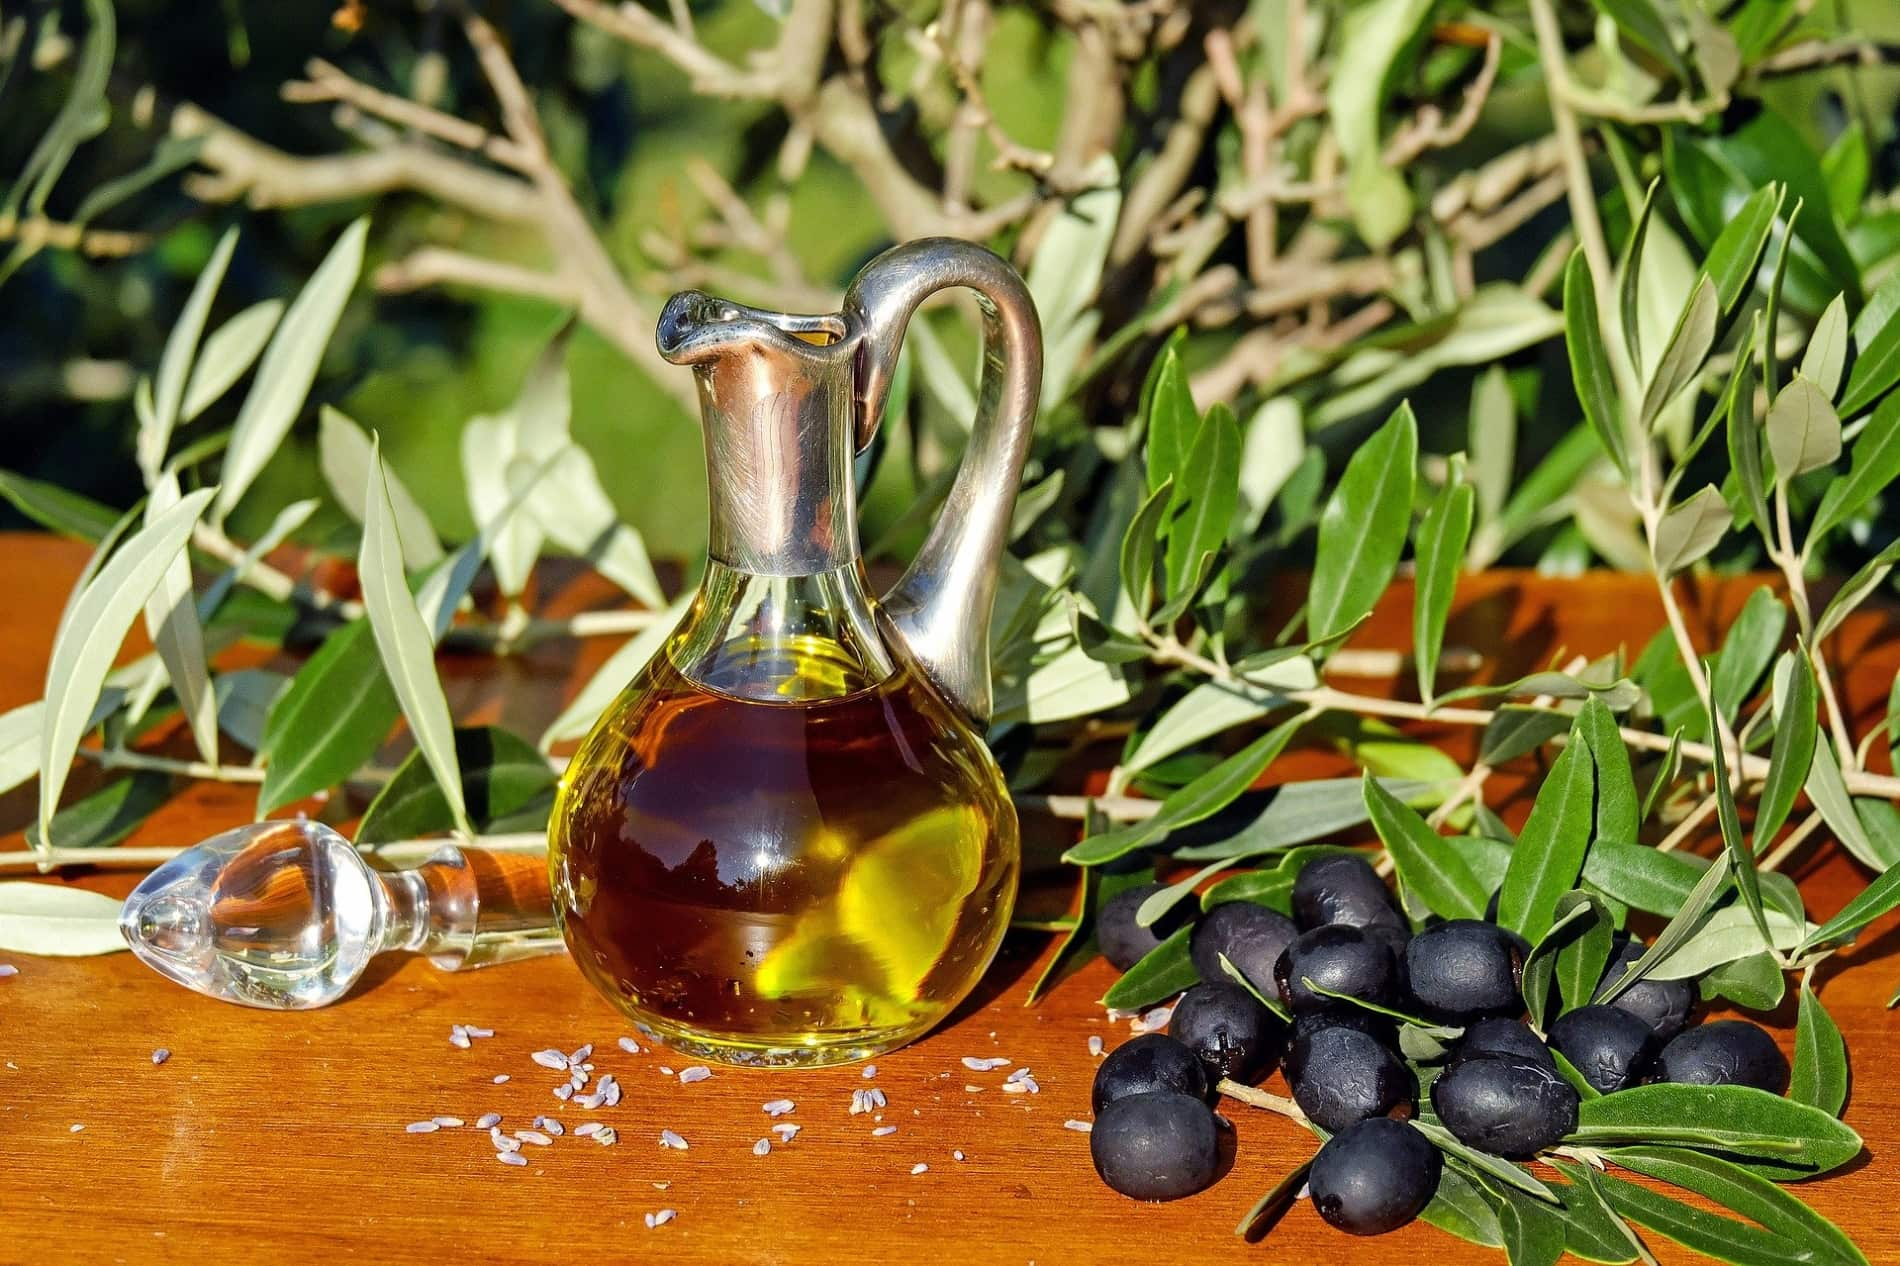 A small glass pitcher of olive oil next to fresh olives and olive branches.